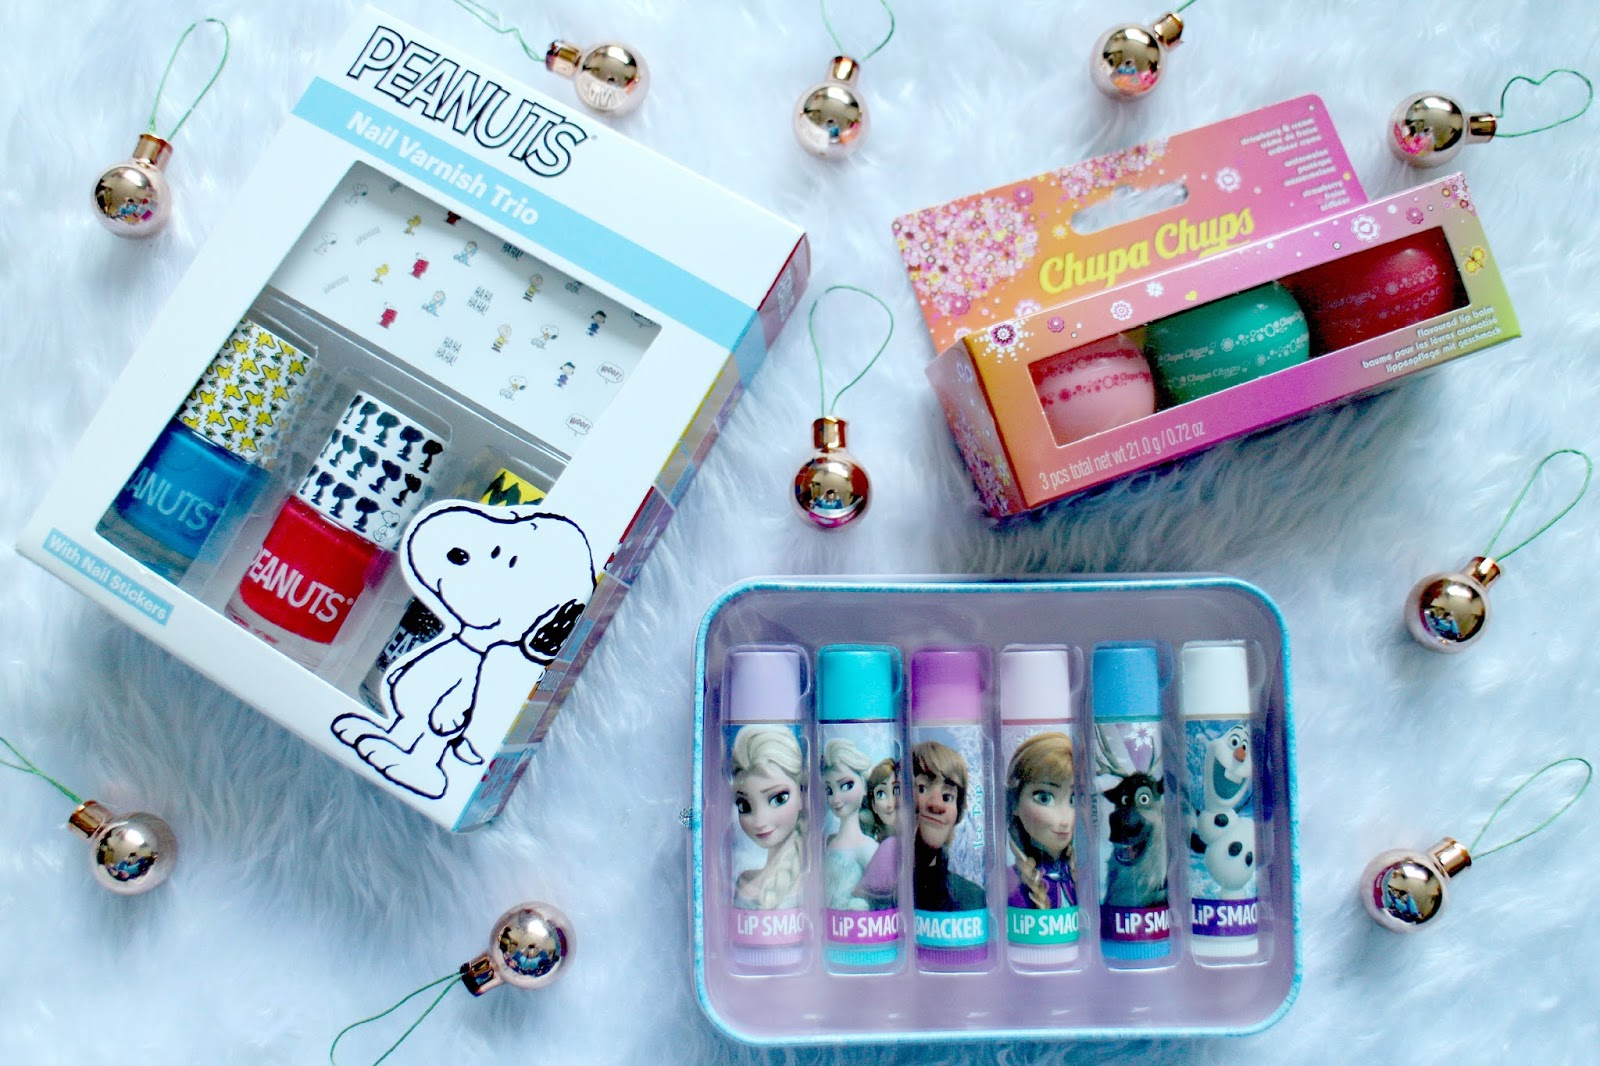 next up are some adorable little gifts which would make for the perfect addition to someones stocking this christmas